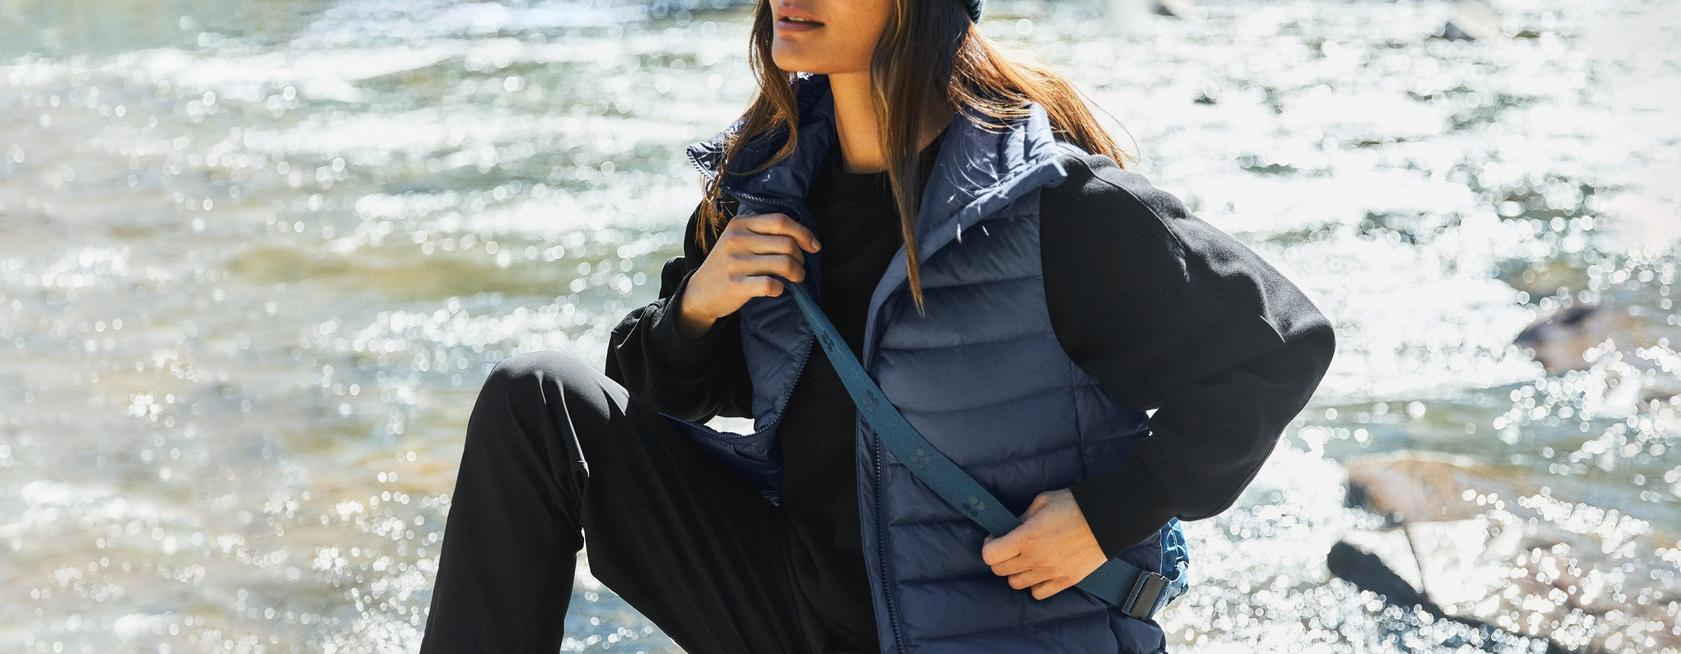 Get Out and Go - From trail to travel, explore more in our all-weather outerwear